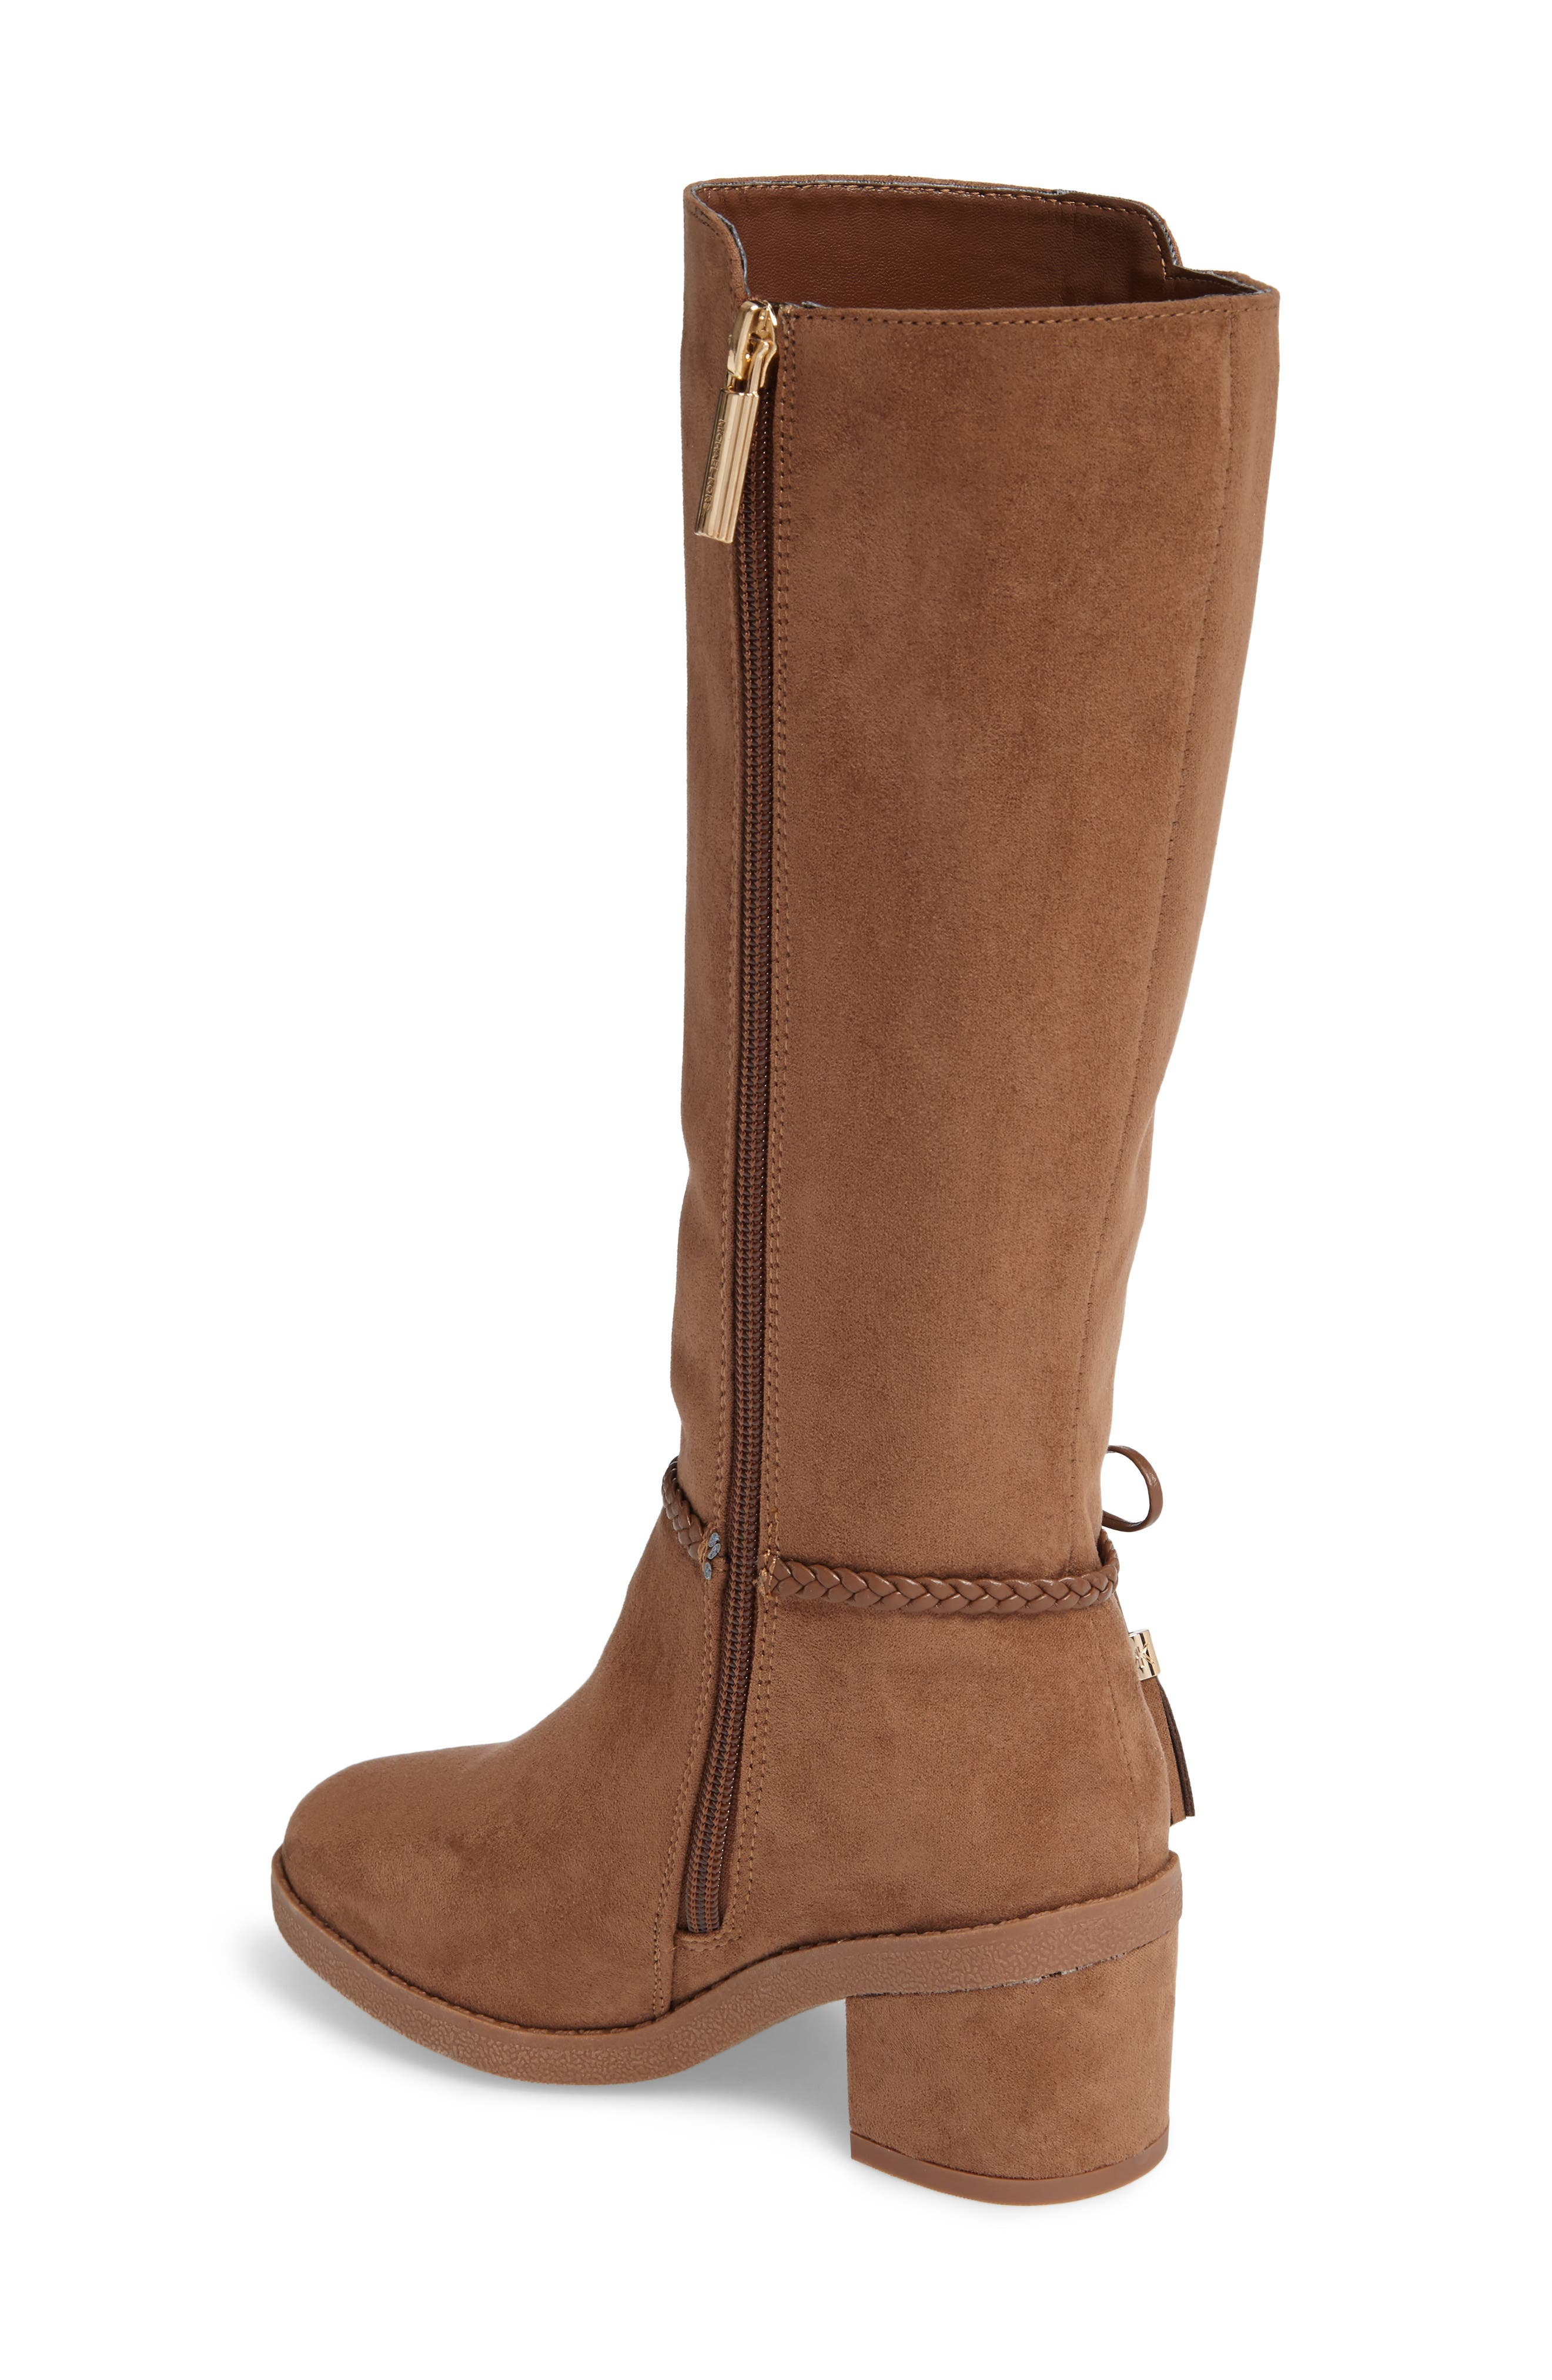 Fawn Simmy Riding Boot,                             Alternate thumbnail 2, color,                             Caramel Faux Suede